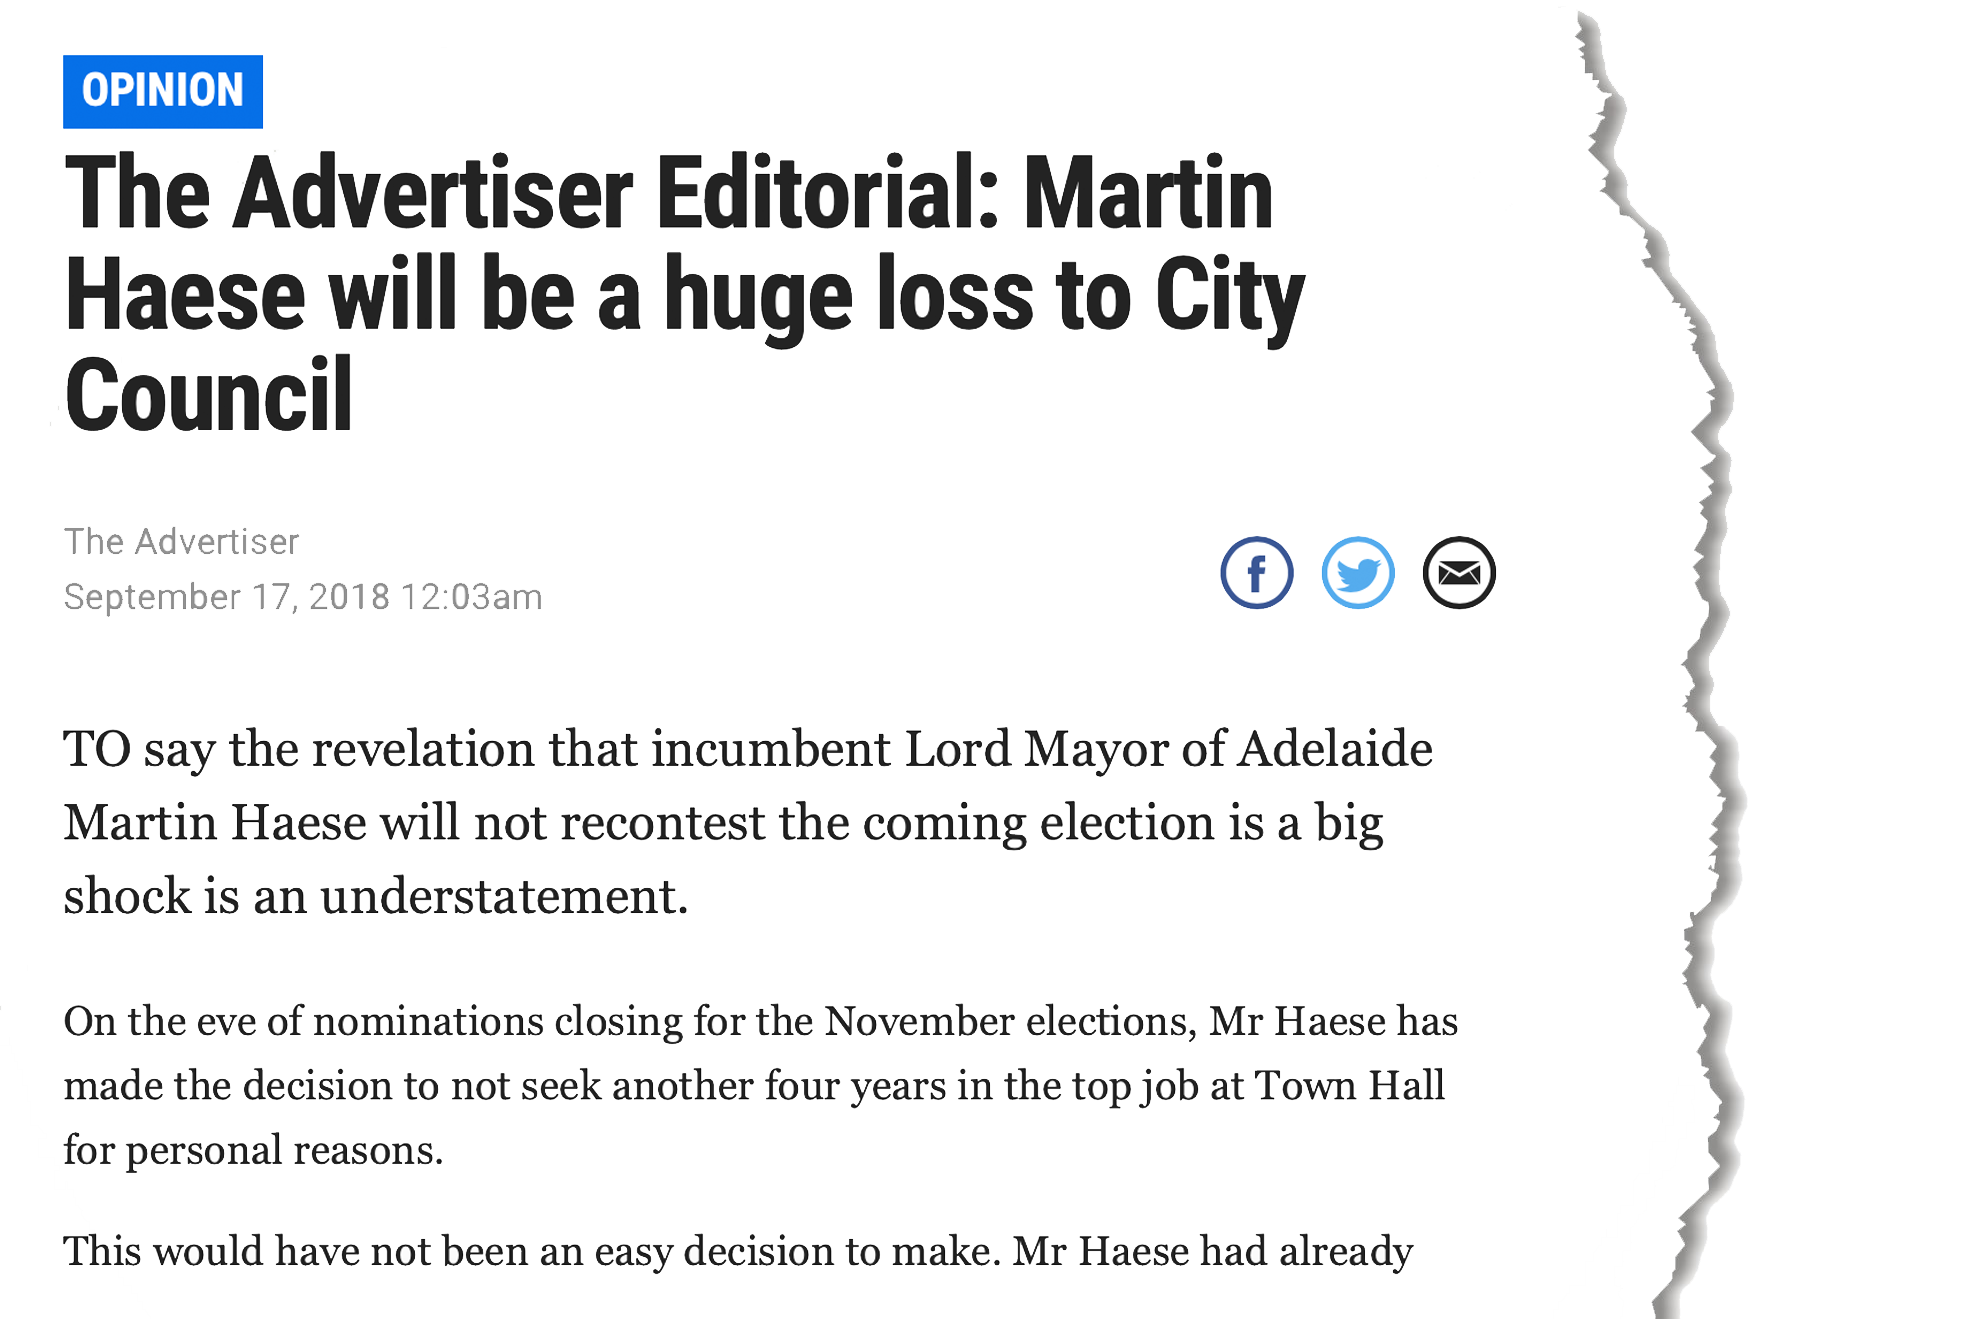 Lord Mayor Martin Haese The Advertiser Editorial Sptember 17th 2018